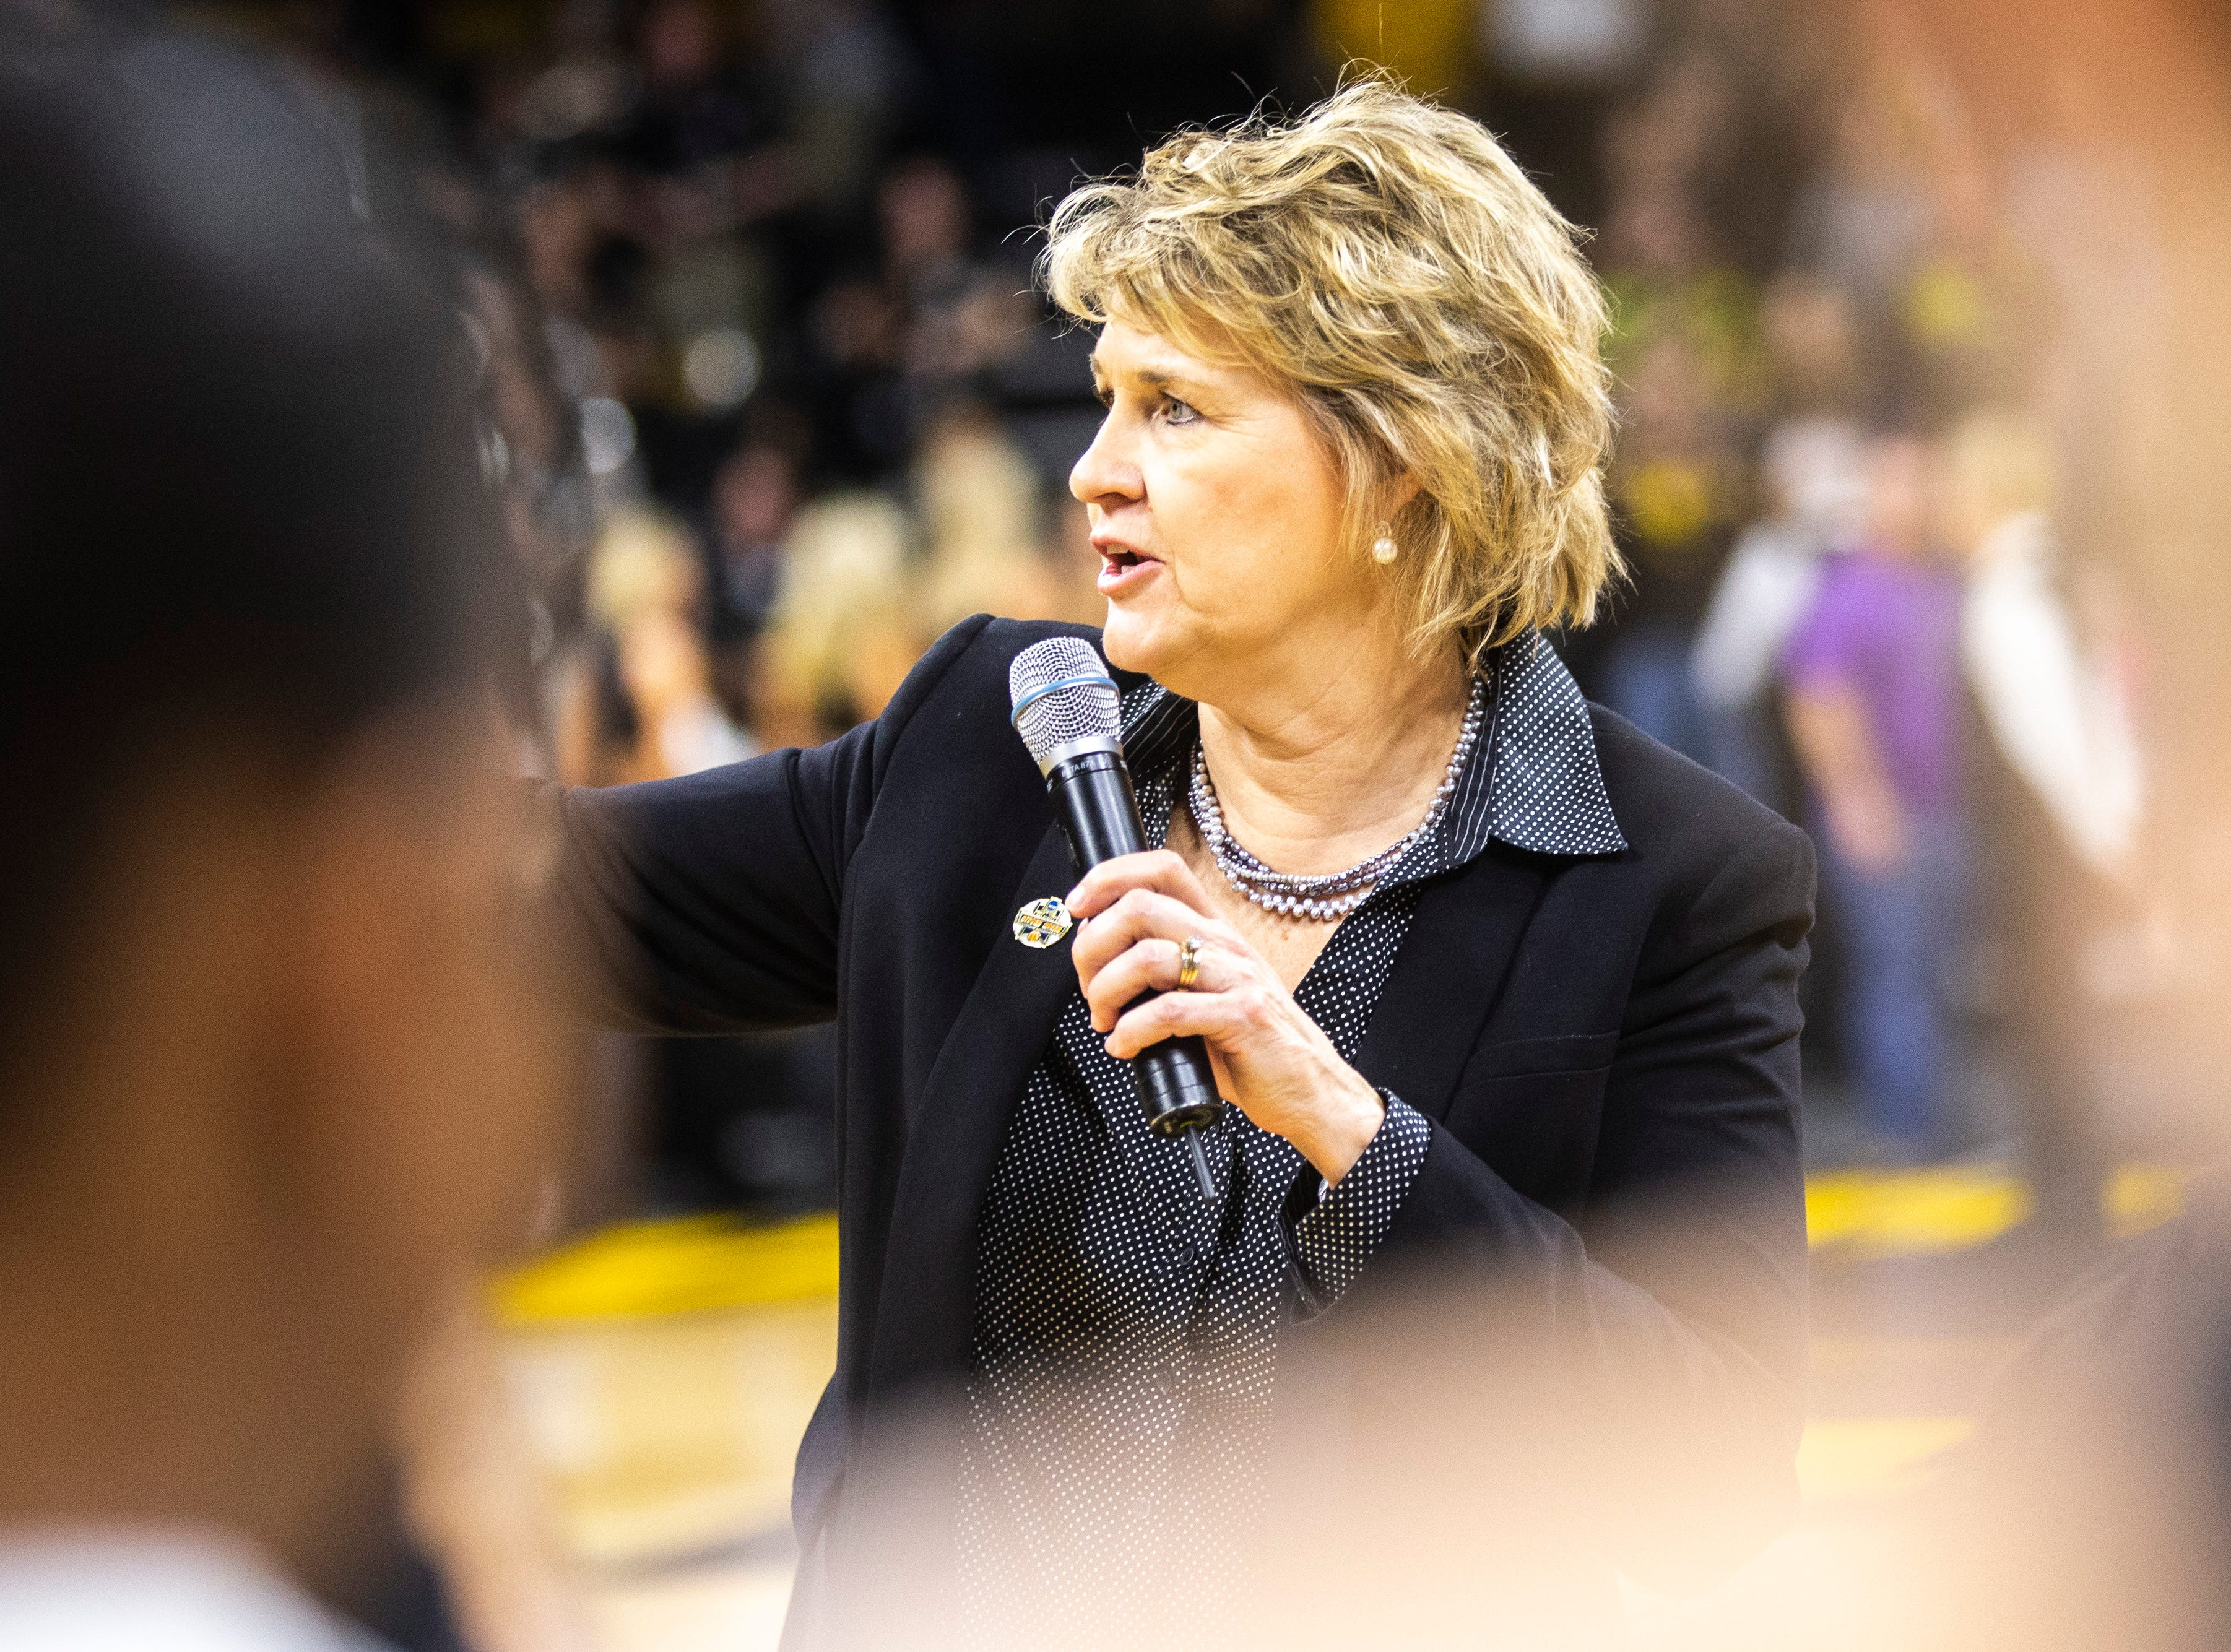 Iowa head coach Lisa Bluder thanks fans after a NCAA women's basketball tournament second-round game, Sunday, March 24, 2019, at Carver-Hawkeye Arena in Iowa City, Iowa.